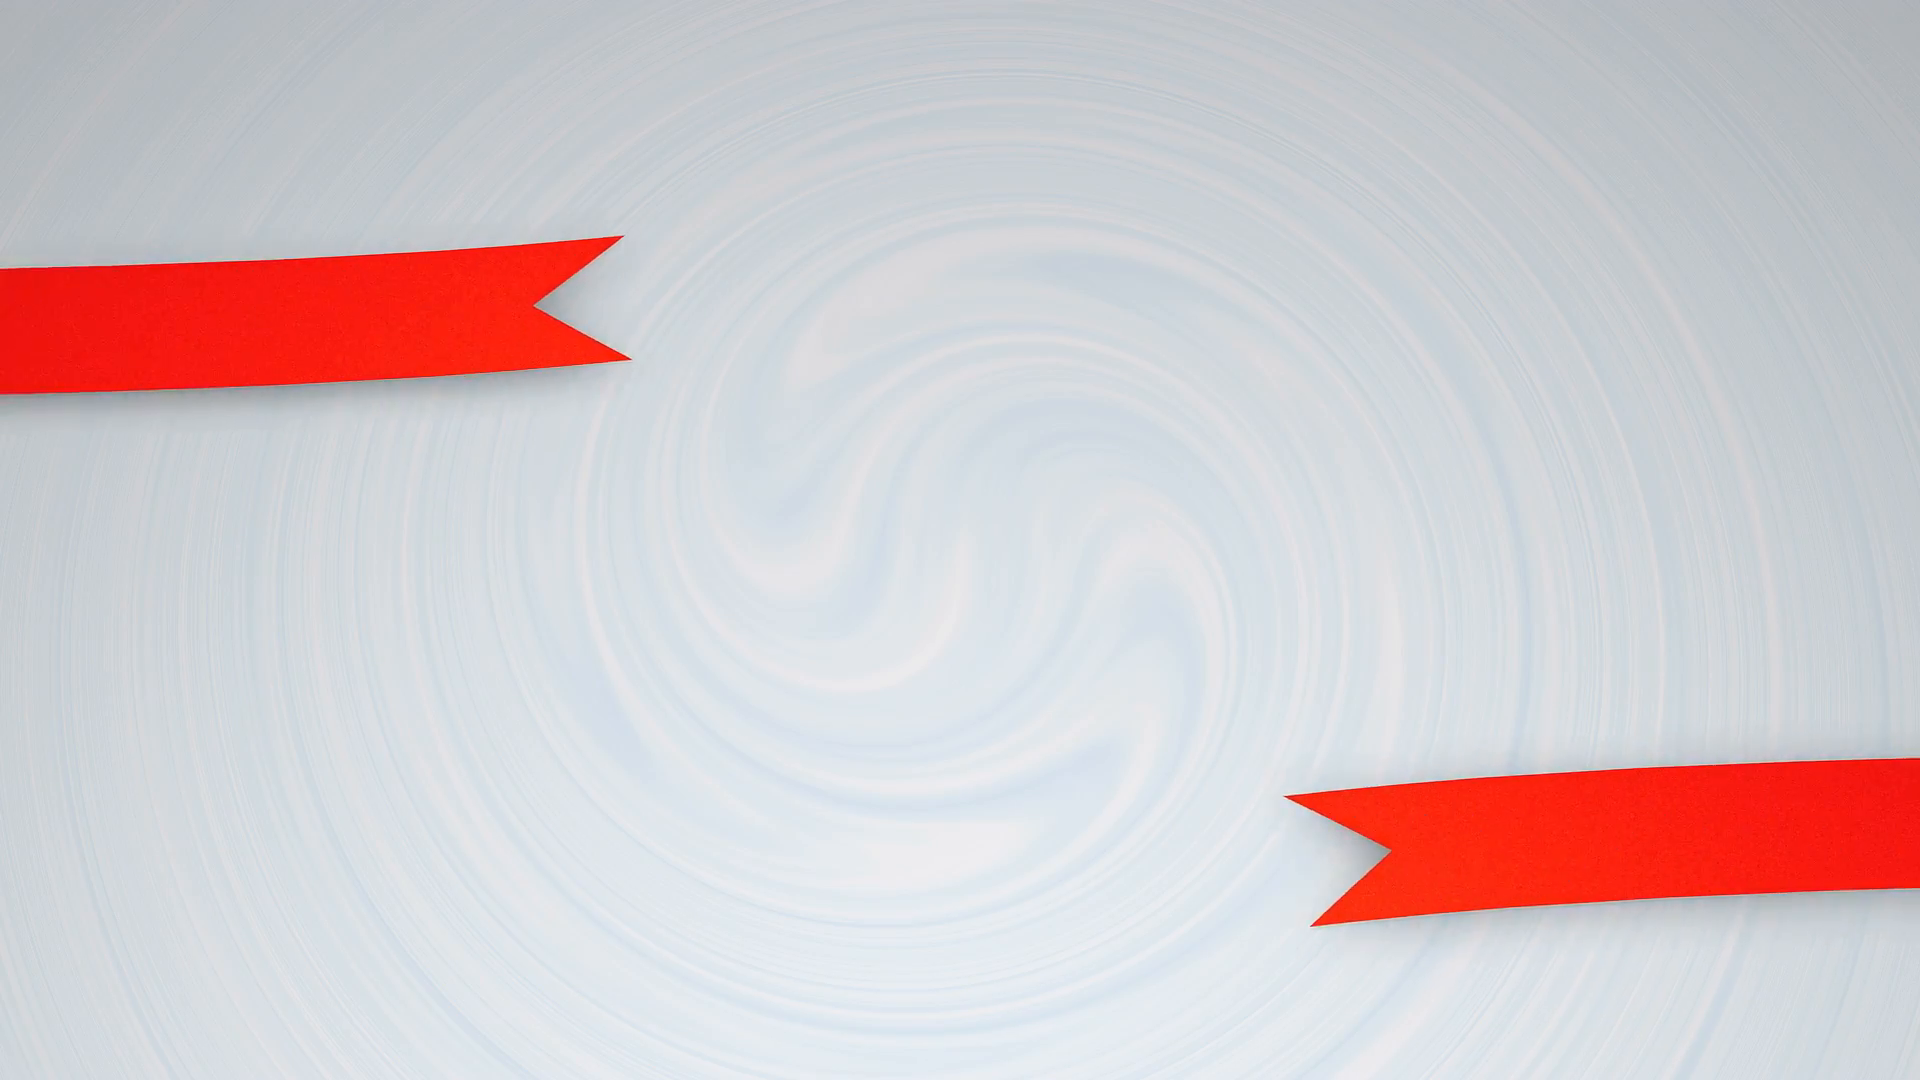 Banner ribbon background, insignia, red, template. Motion Background -  VideoBlocks - PNG HD Banner